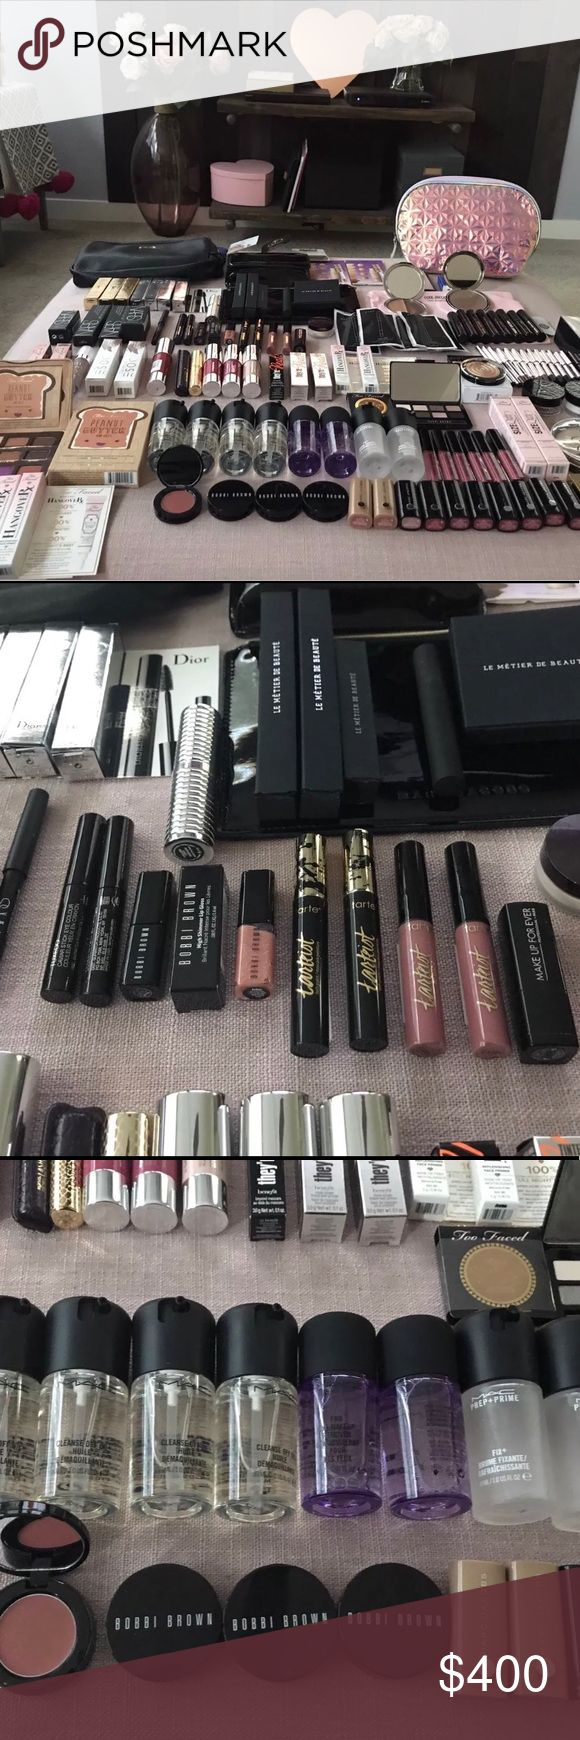 128 Piece Makeup Bundle Brands like YSL,Mac and many more!!   If interested in my product please review my terms!🔶Shipping depends on your location🔶Contact me before purchasing🔶Many payment methods available🔸Prices are negotiable                  🔶(856) 442-9869🔸 MAC Cosmetics Makeup